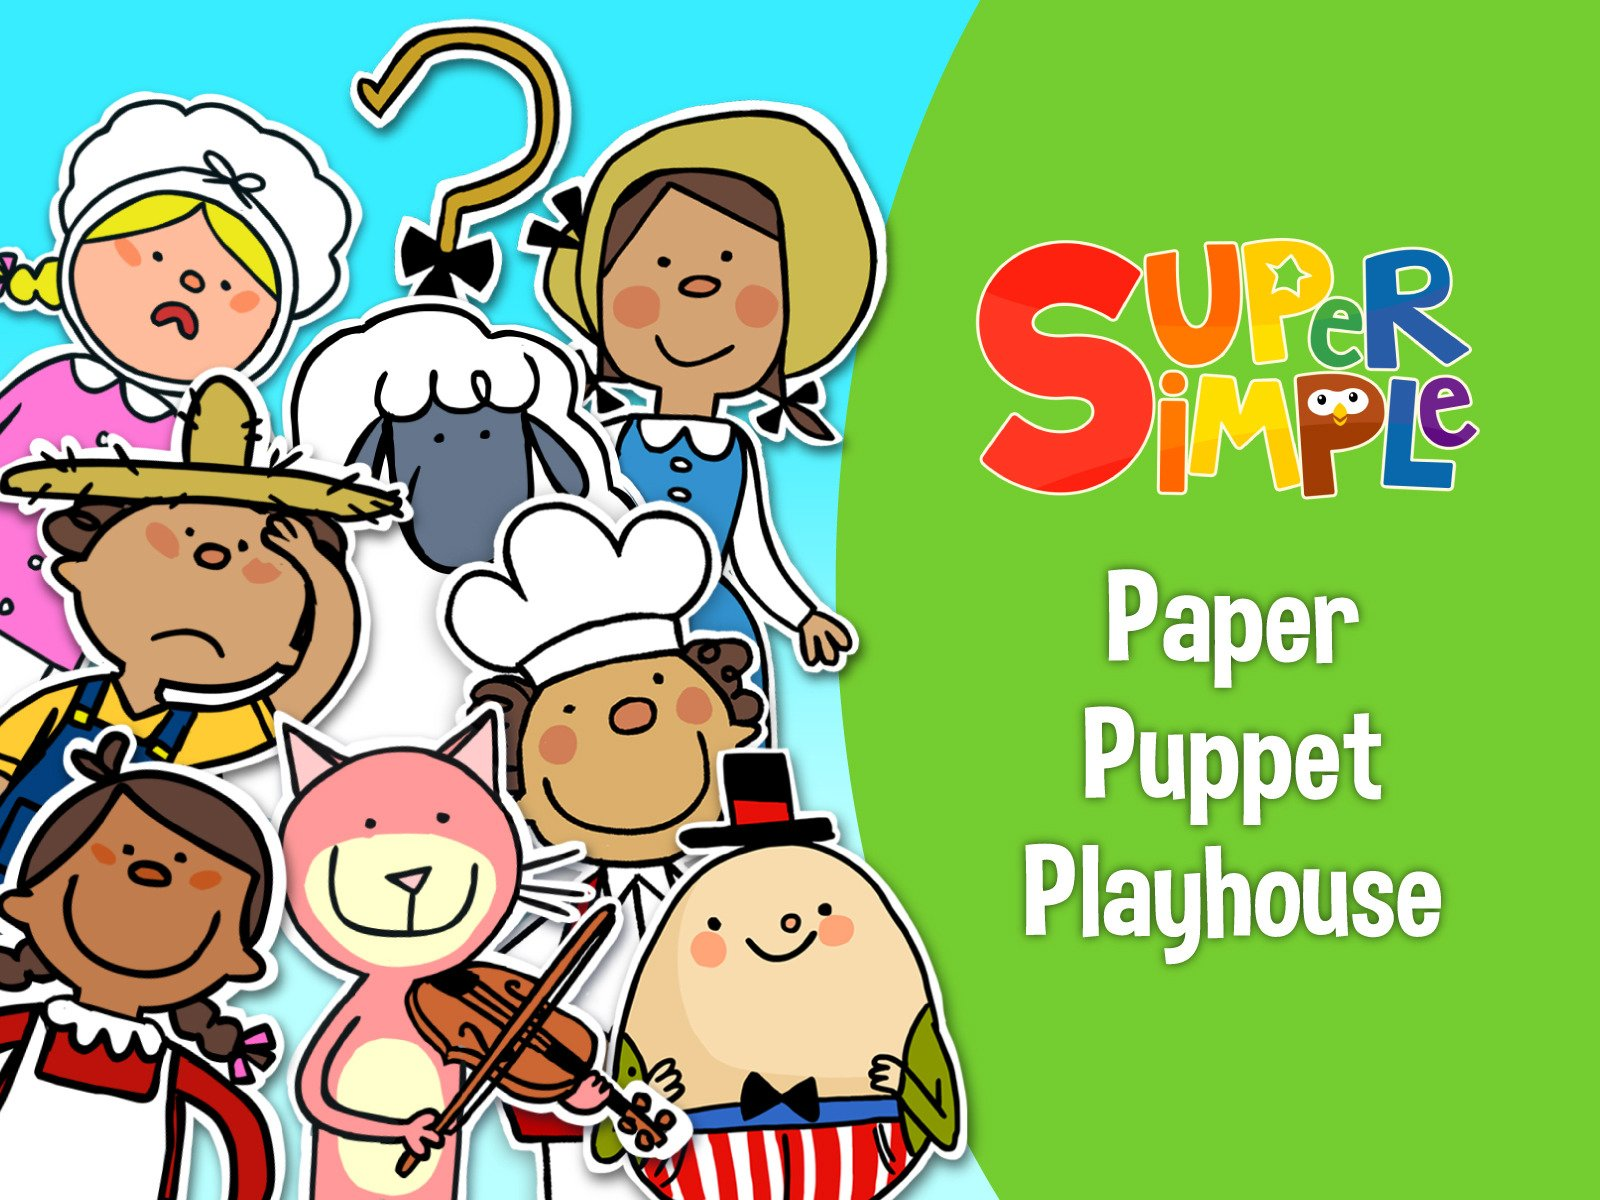 Paper Puppet Playhouse - Season 1